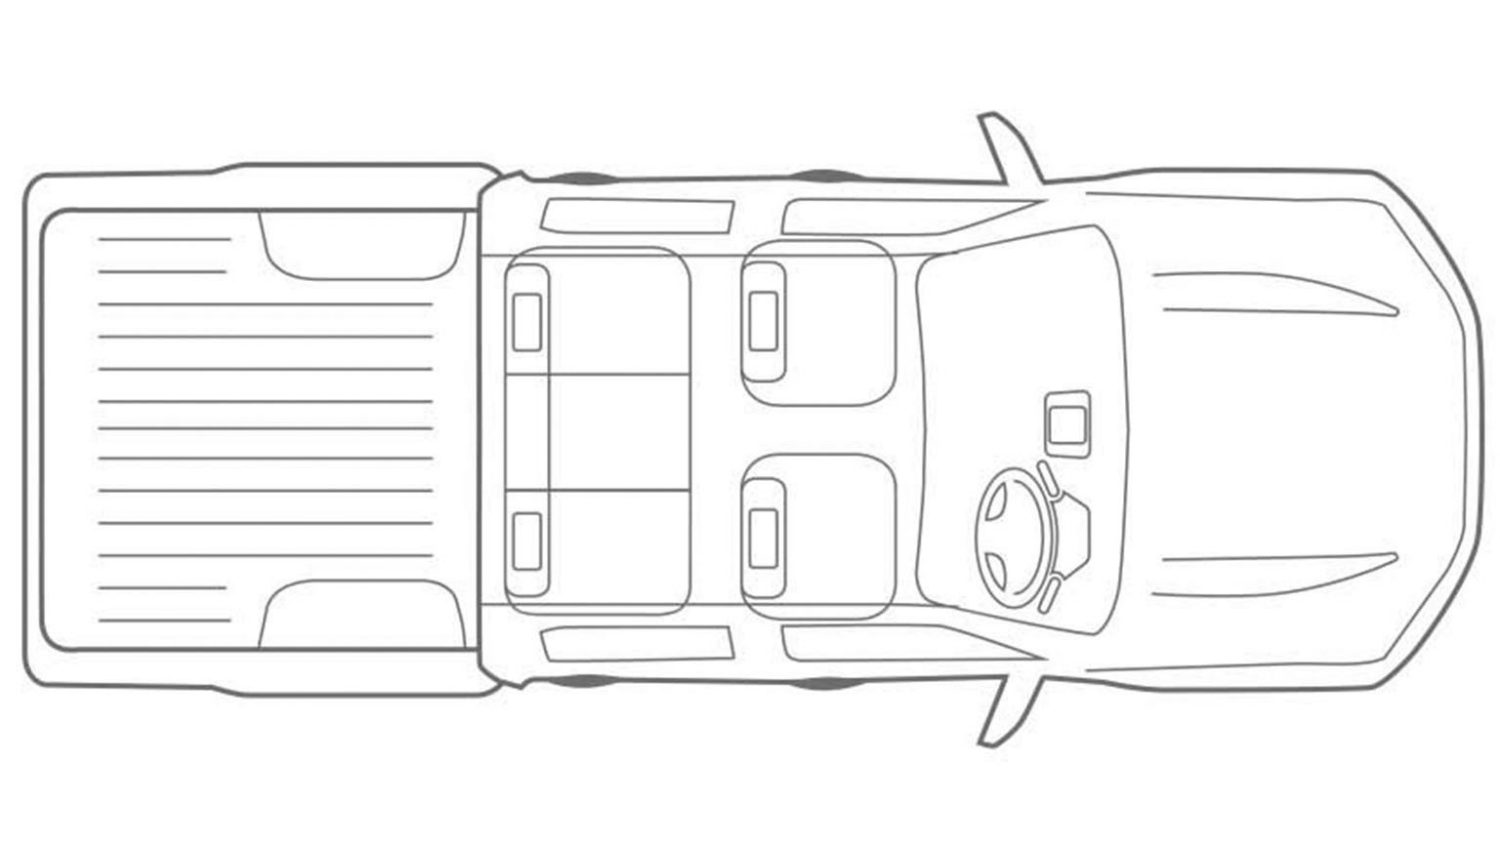 Overhead Vehicle Illustration